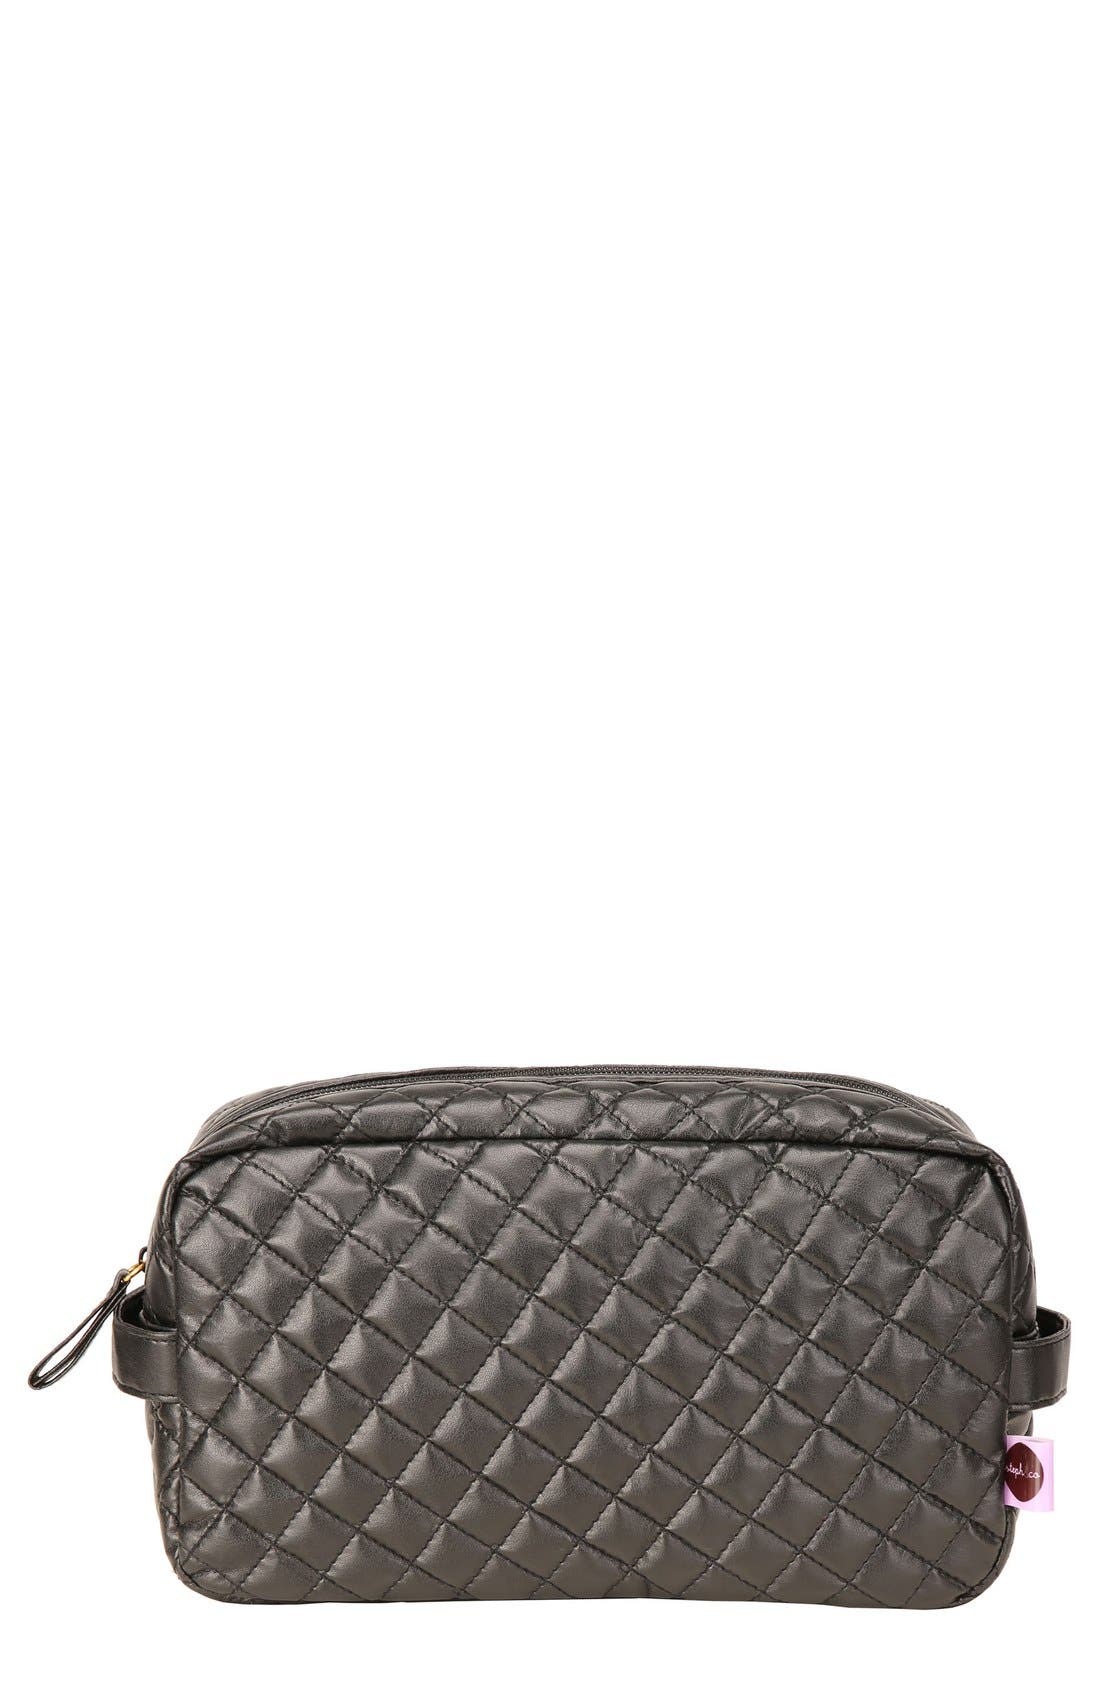 'Viveca' Quilted Black Cosmetics Case,                             Main thumbnail 1, color,                             000